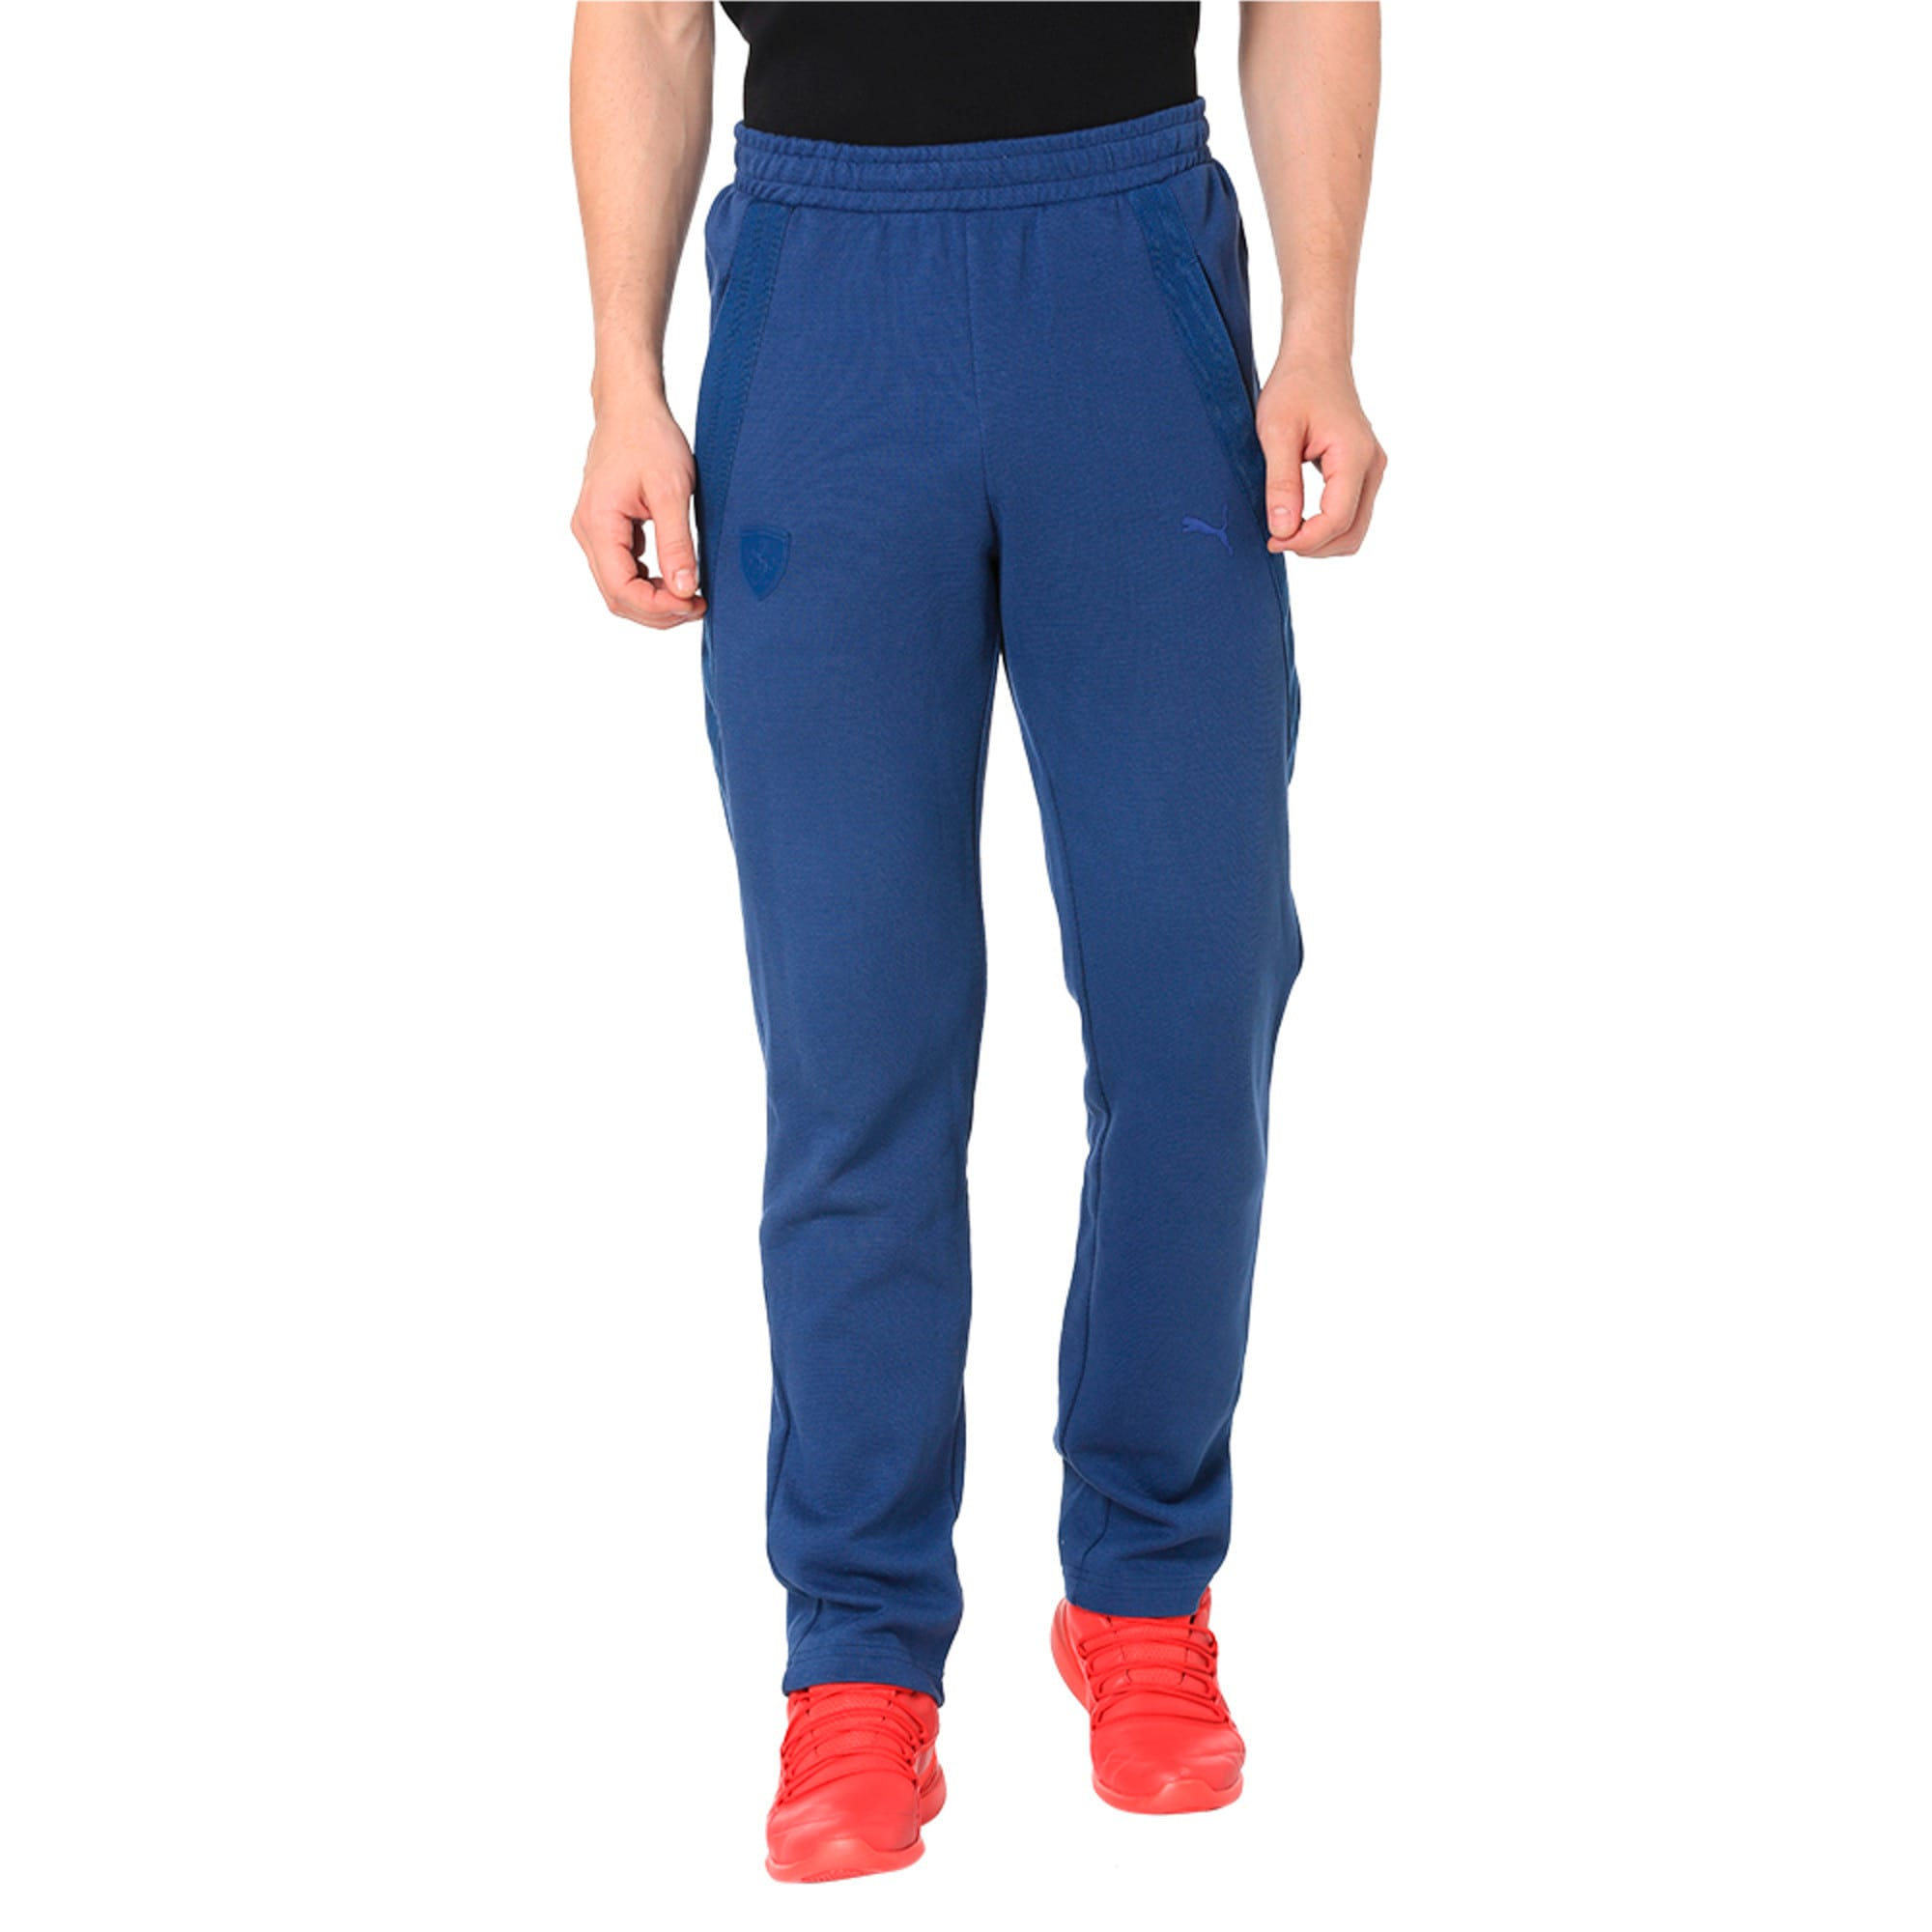 Thumbnail 3 of Ferrari Lifestyle Men's Sweatpants, Sargasso Sea, medium-IND